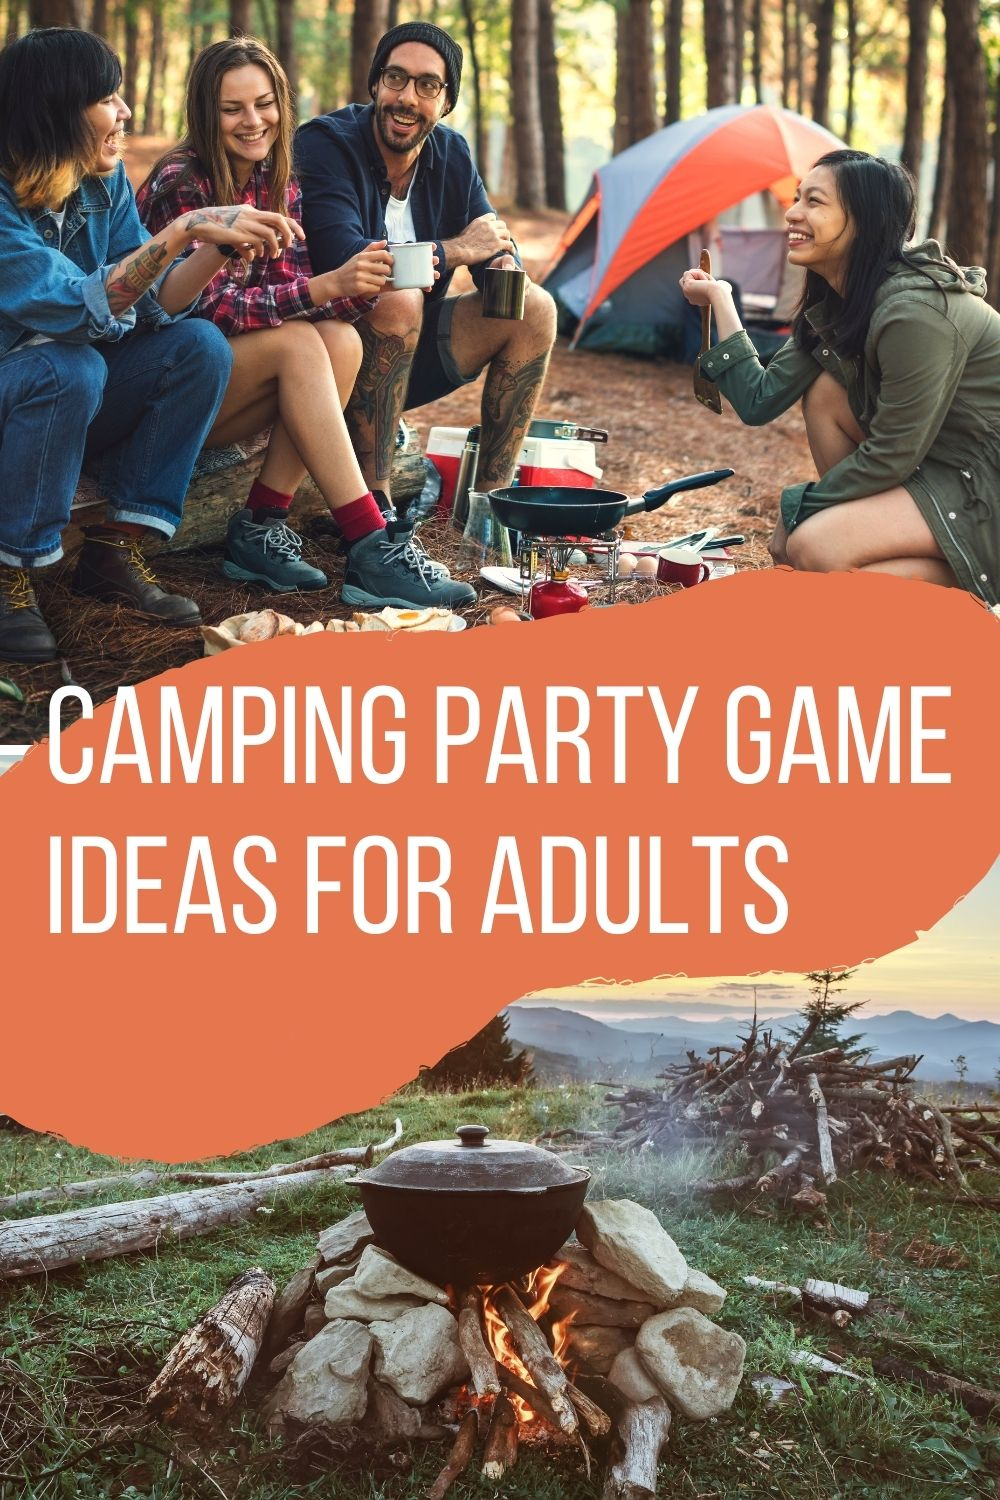 Easy To Bring Along Camping Games for Adults